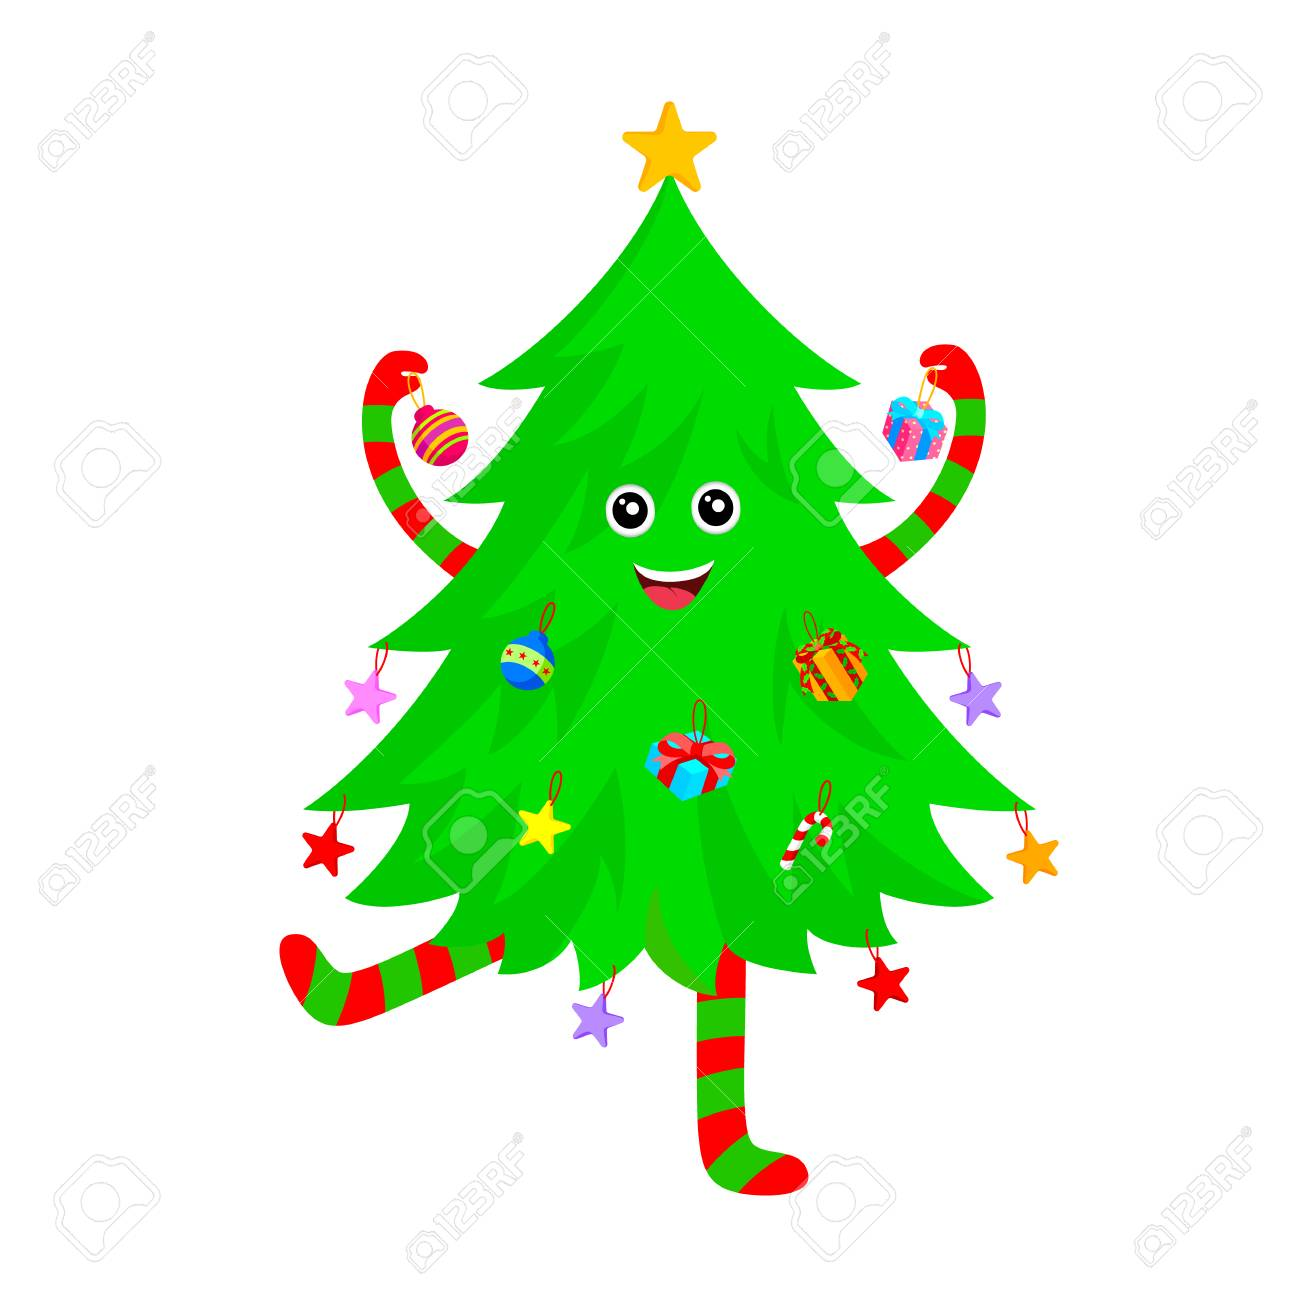 Cute Christmas Tree Cartoon Characters Design Merry Christmas Royalty Free Cliparts Vectors And Stock Illustration Image 90850032 However, every year at least one new cartoon should be added into the list of kids' favourite animated movies. cute christmas tree cartoon characters design merry christmas